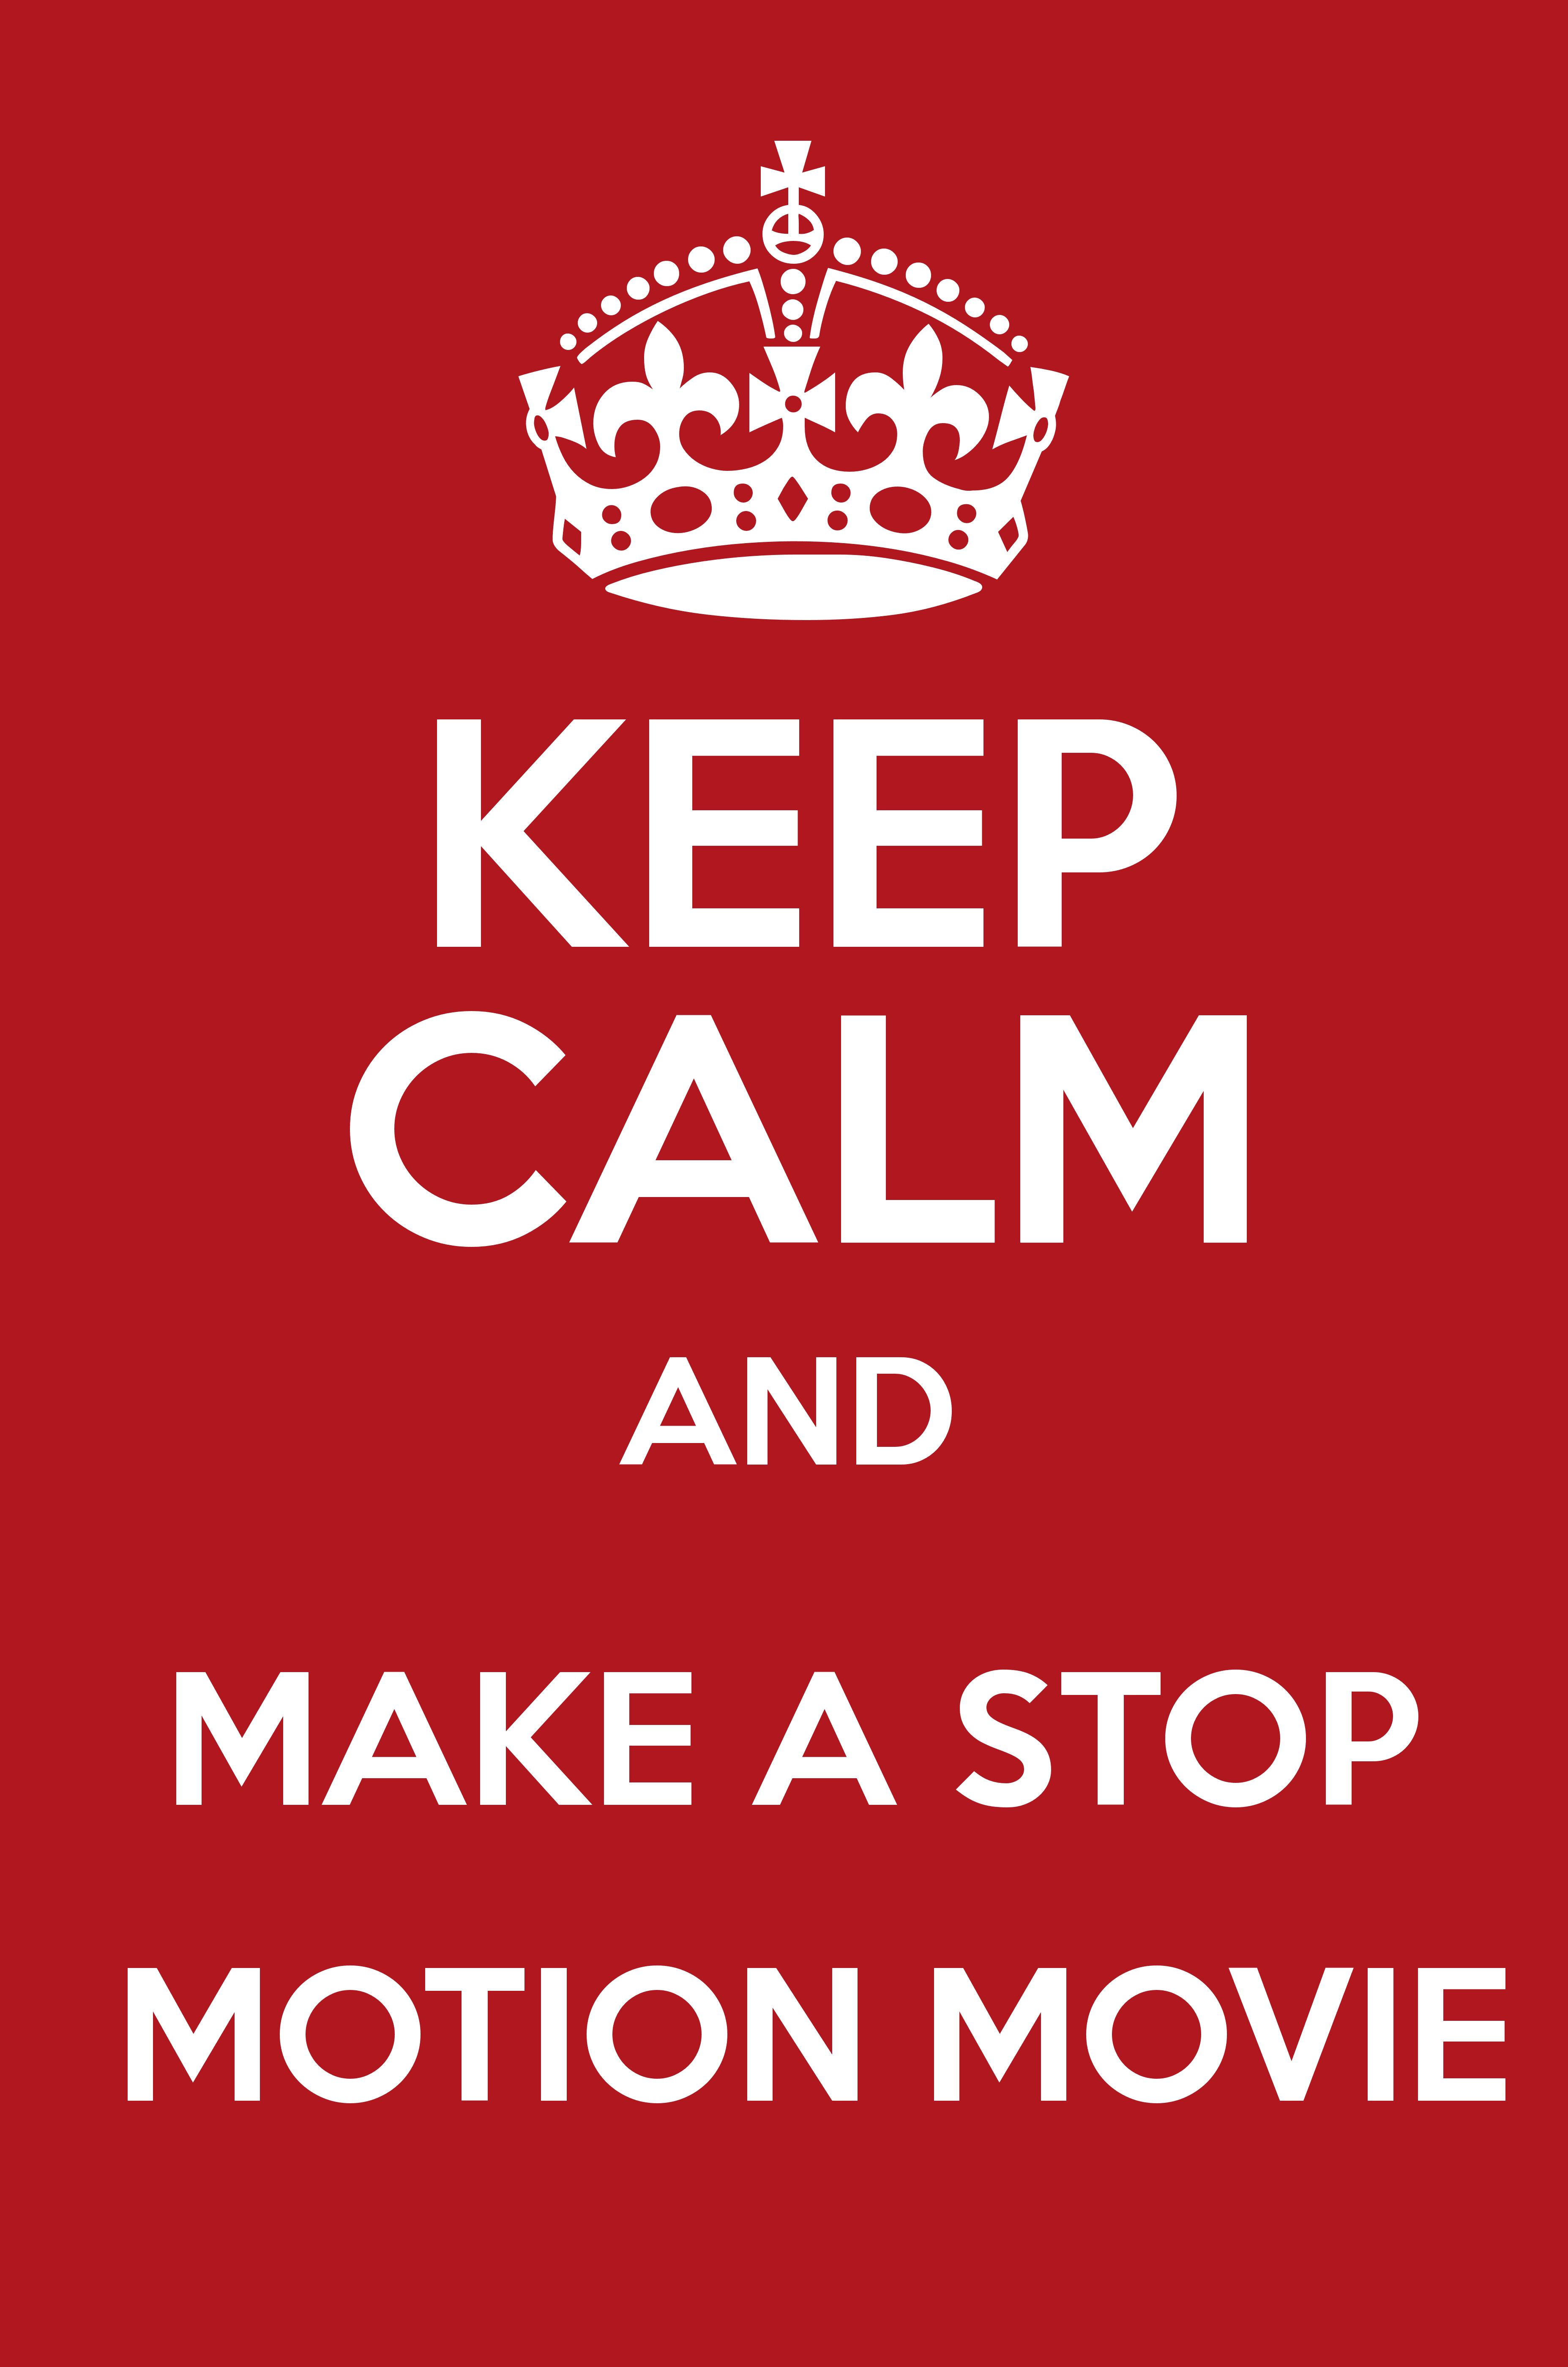 KEEP CALM AND MAKE A STOP MOTION MOVIE - Keep Calm and Posters